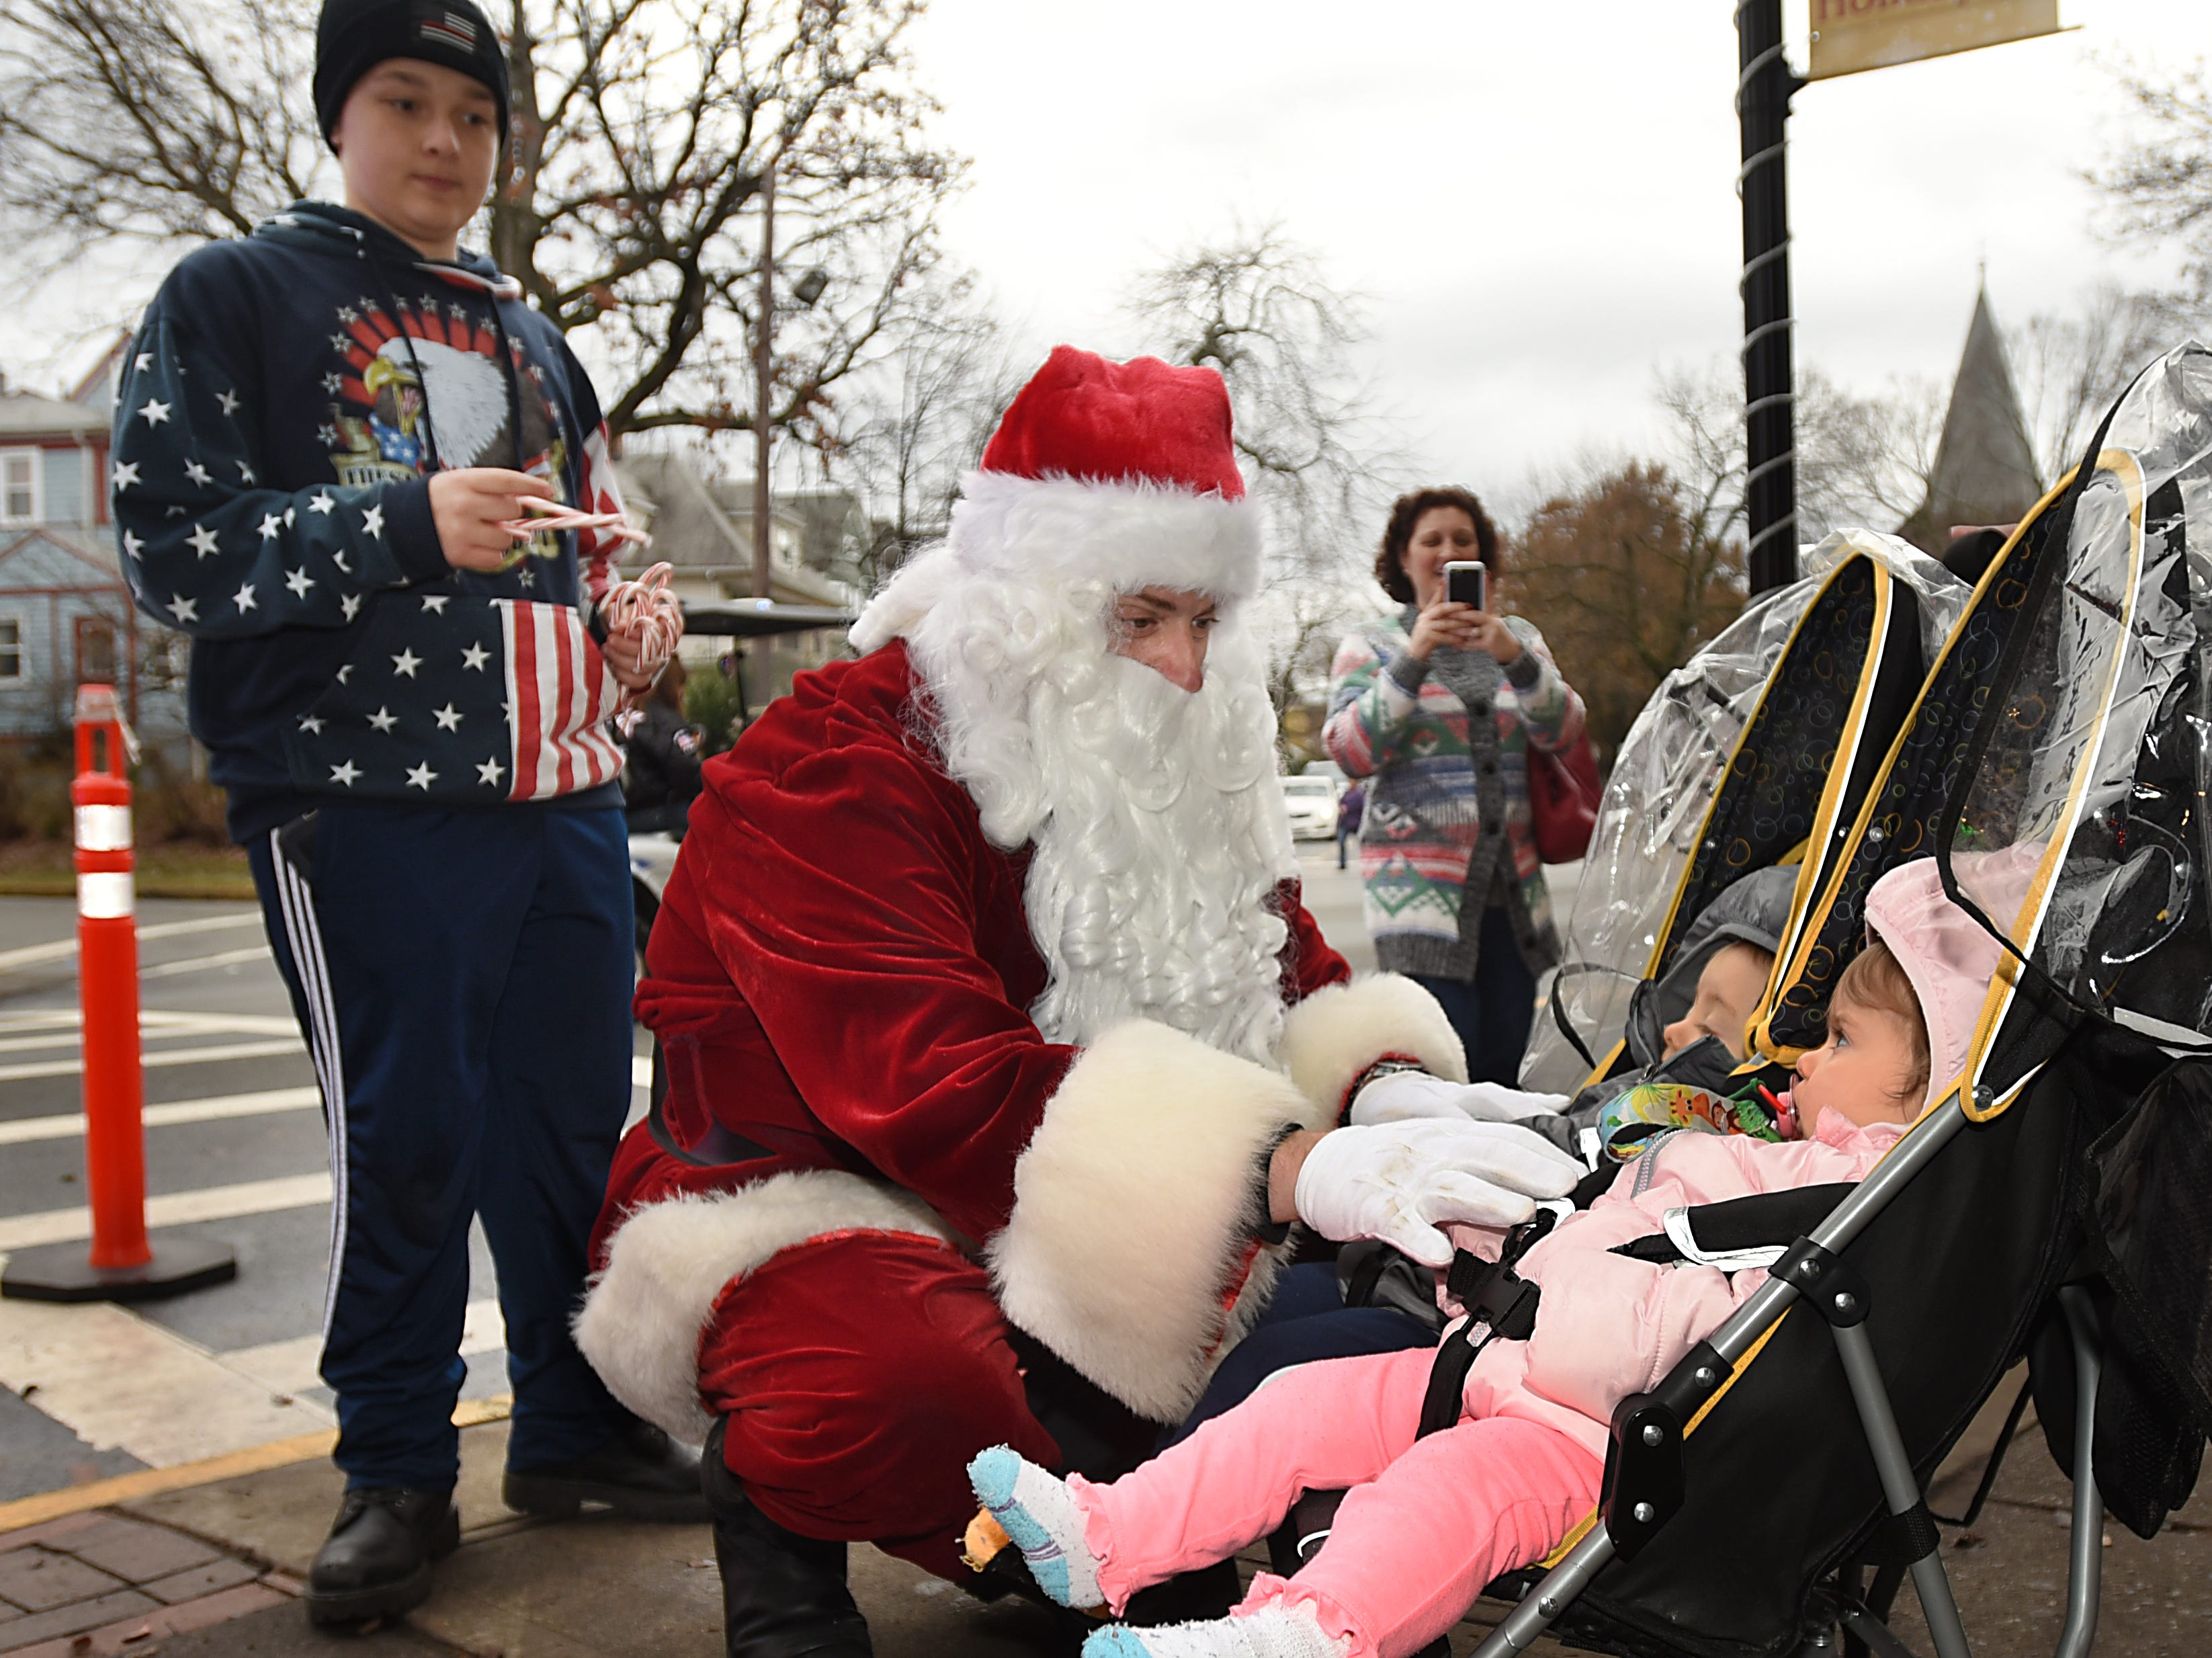 The Rutherford Fire Department escorts Santa around Rutherford on Saturday December 15, 2018. Anthony Bruno, dressed as Santa greets Victoria and Leonardo Kruss, both 11 months old.